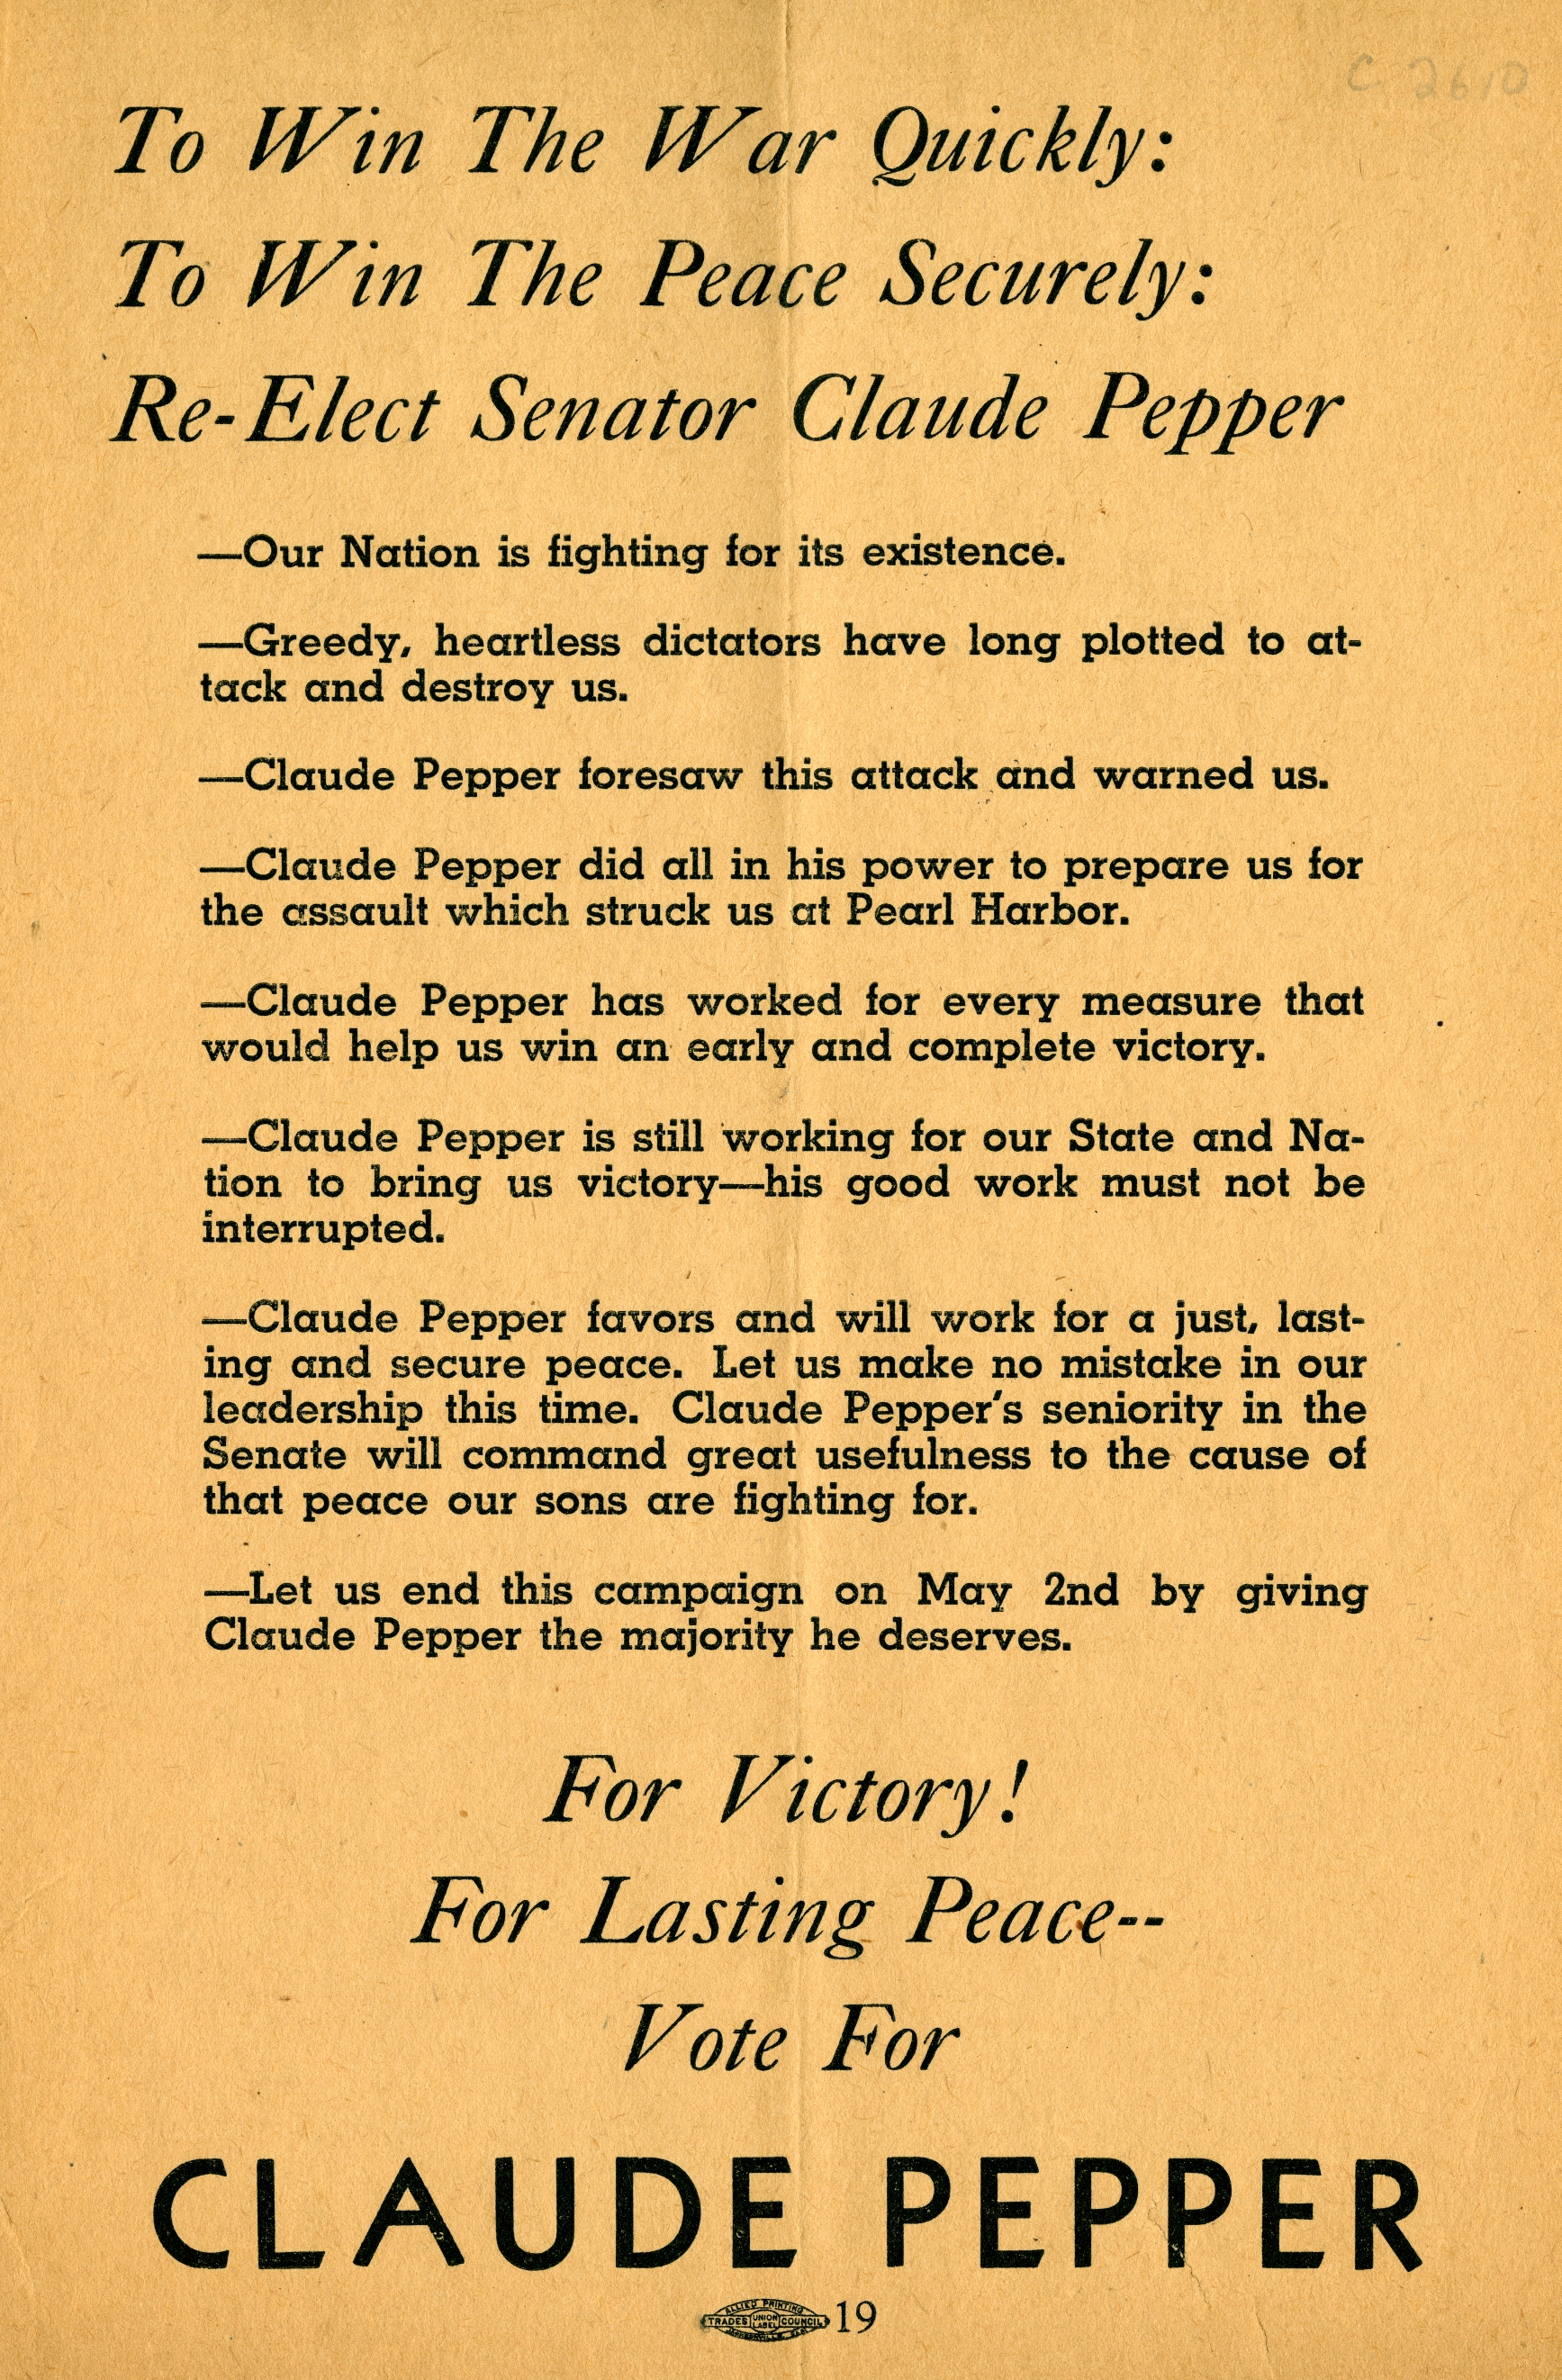 To win the war quickly, to win the peace securely, re-elect Senator Claude Pepper